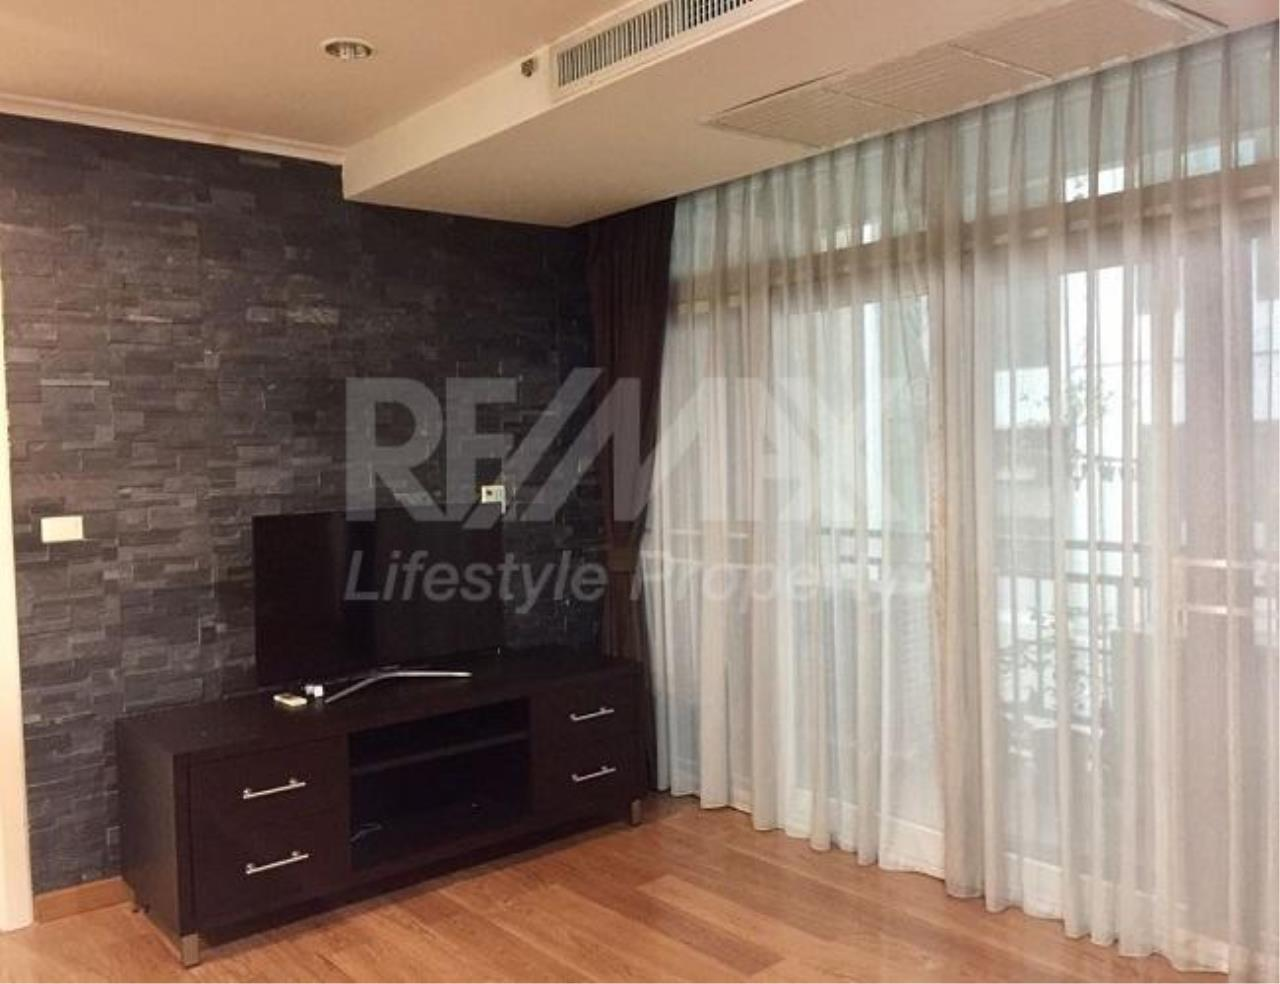 RE/MAX LifeStyle Property Agency's Wattana Suite 13